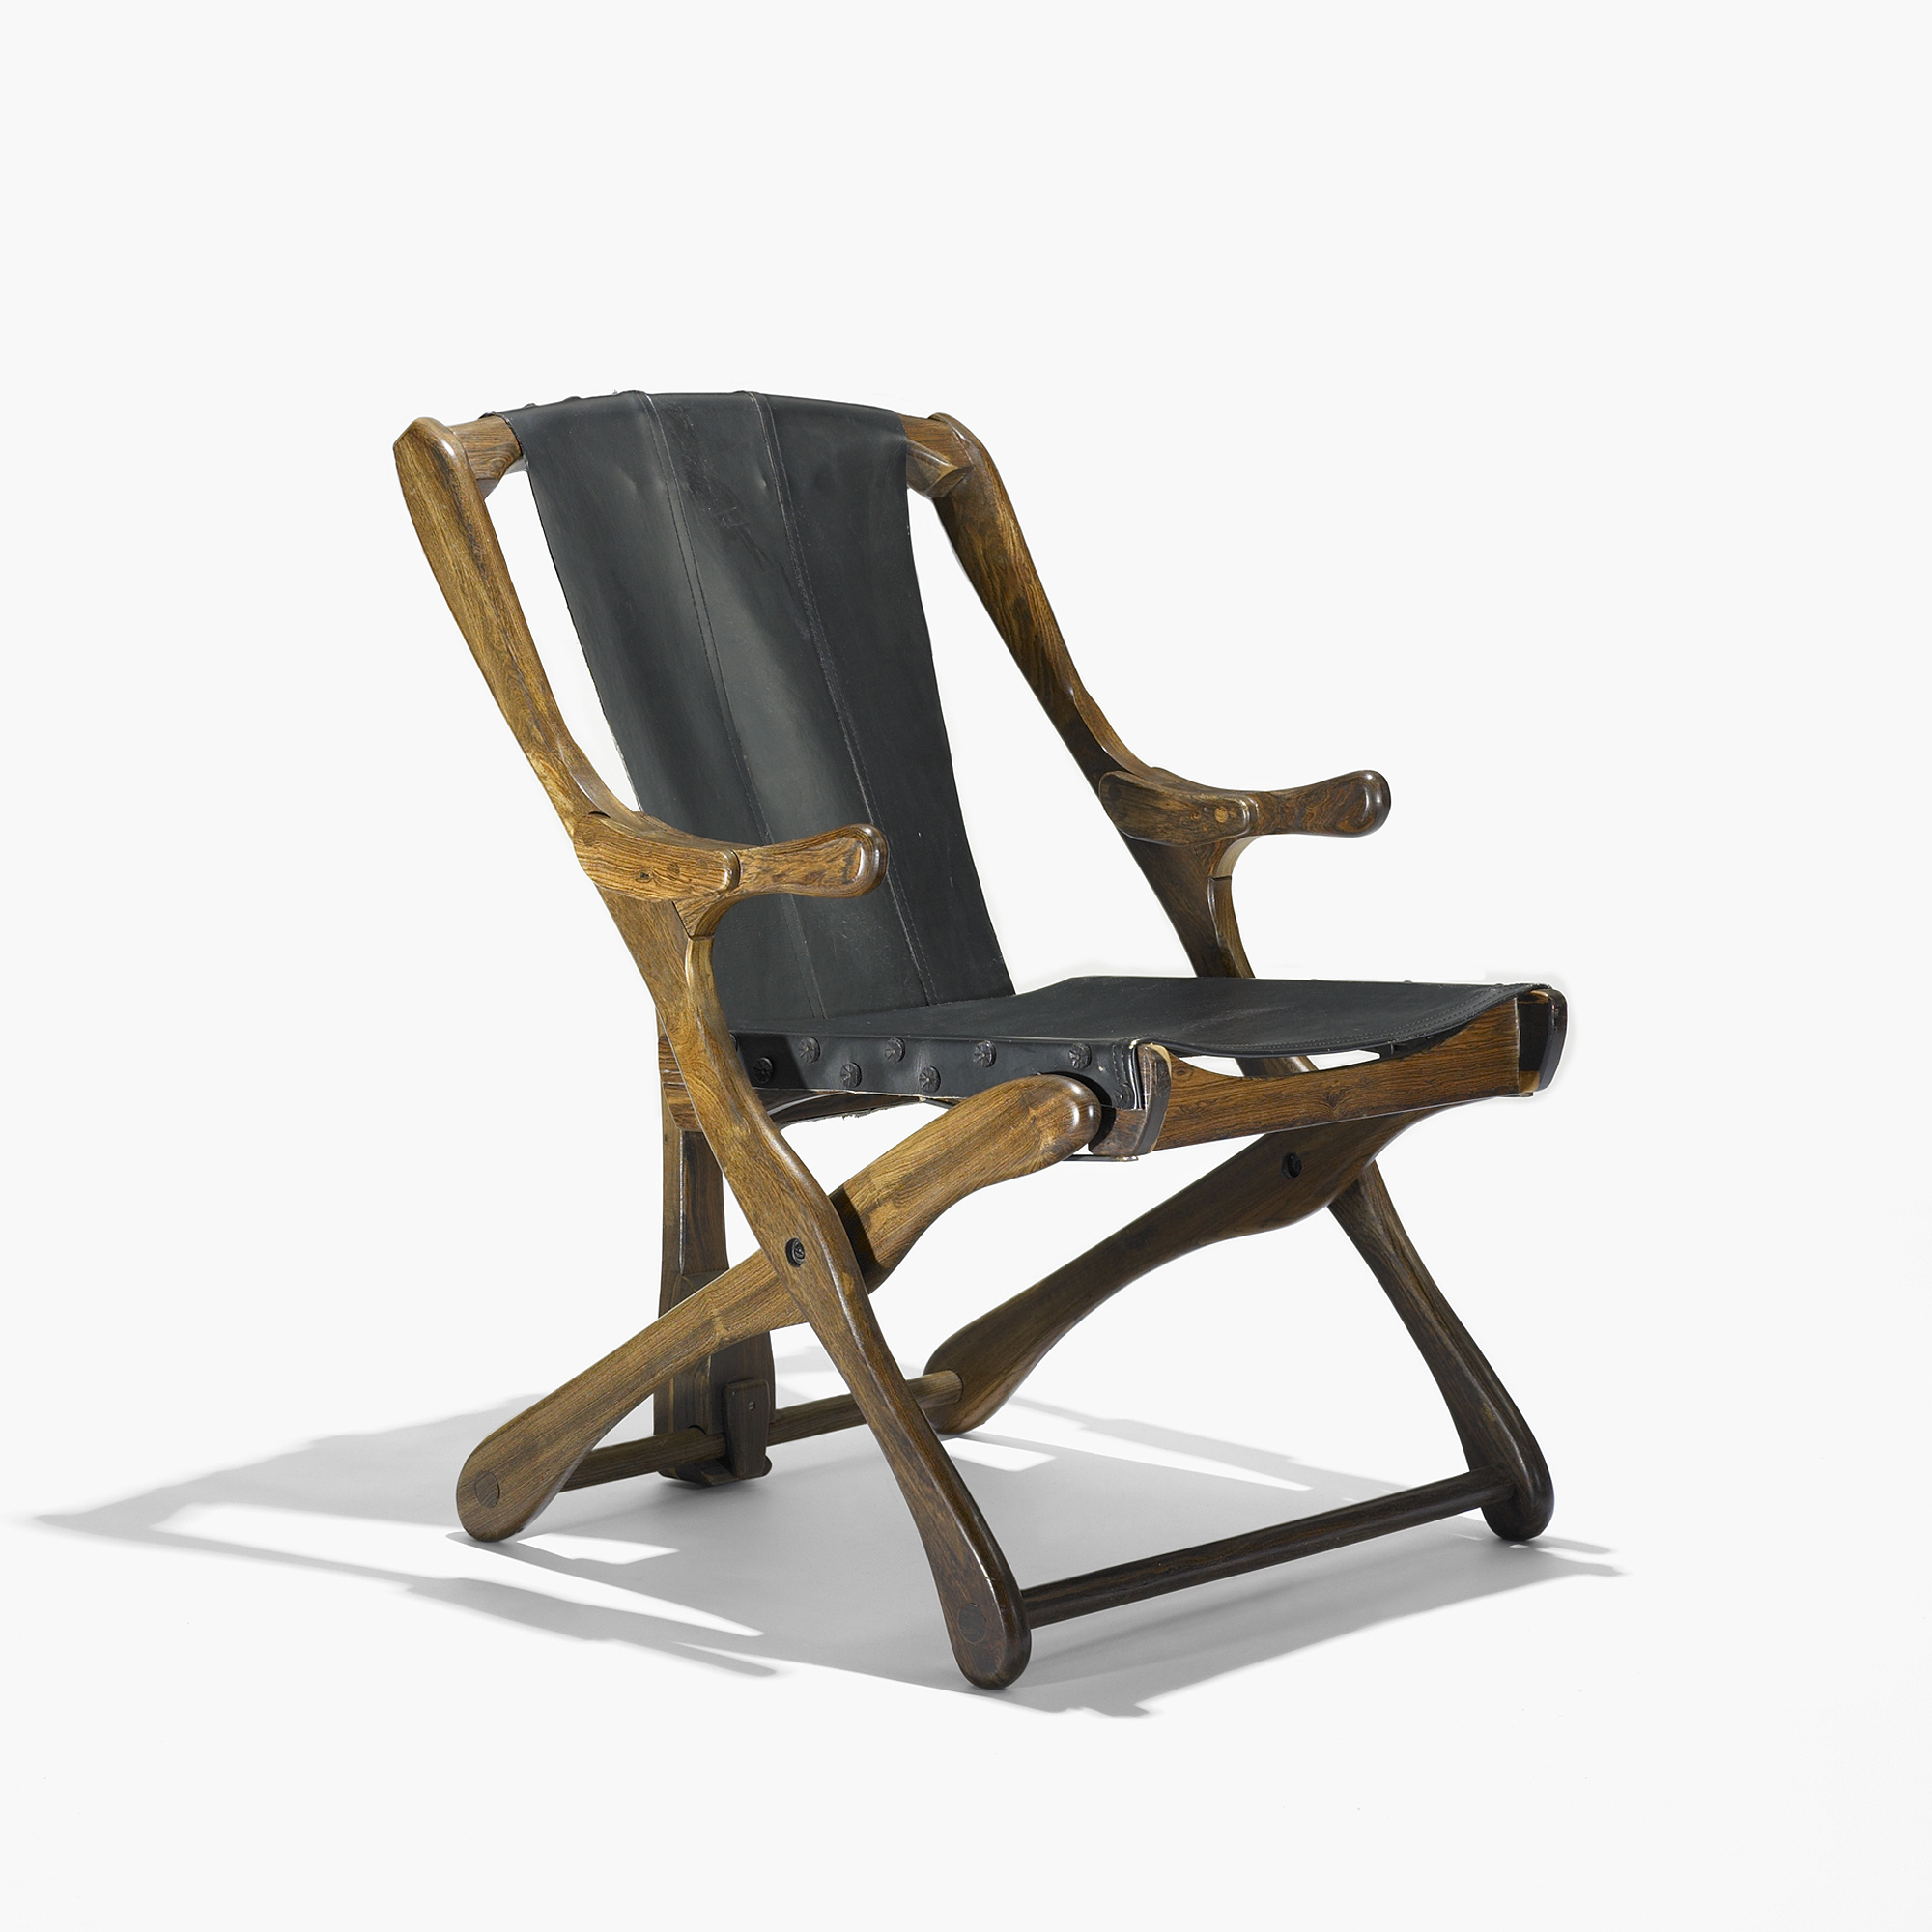 171 Don Shoemaker Folding Lounge Chair Modern Design 23 March 2010 Auctions Wright Auctions Of Art And Design